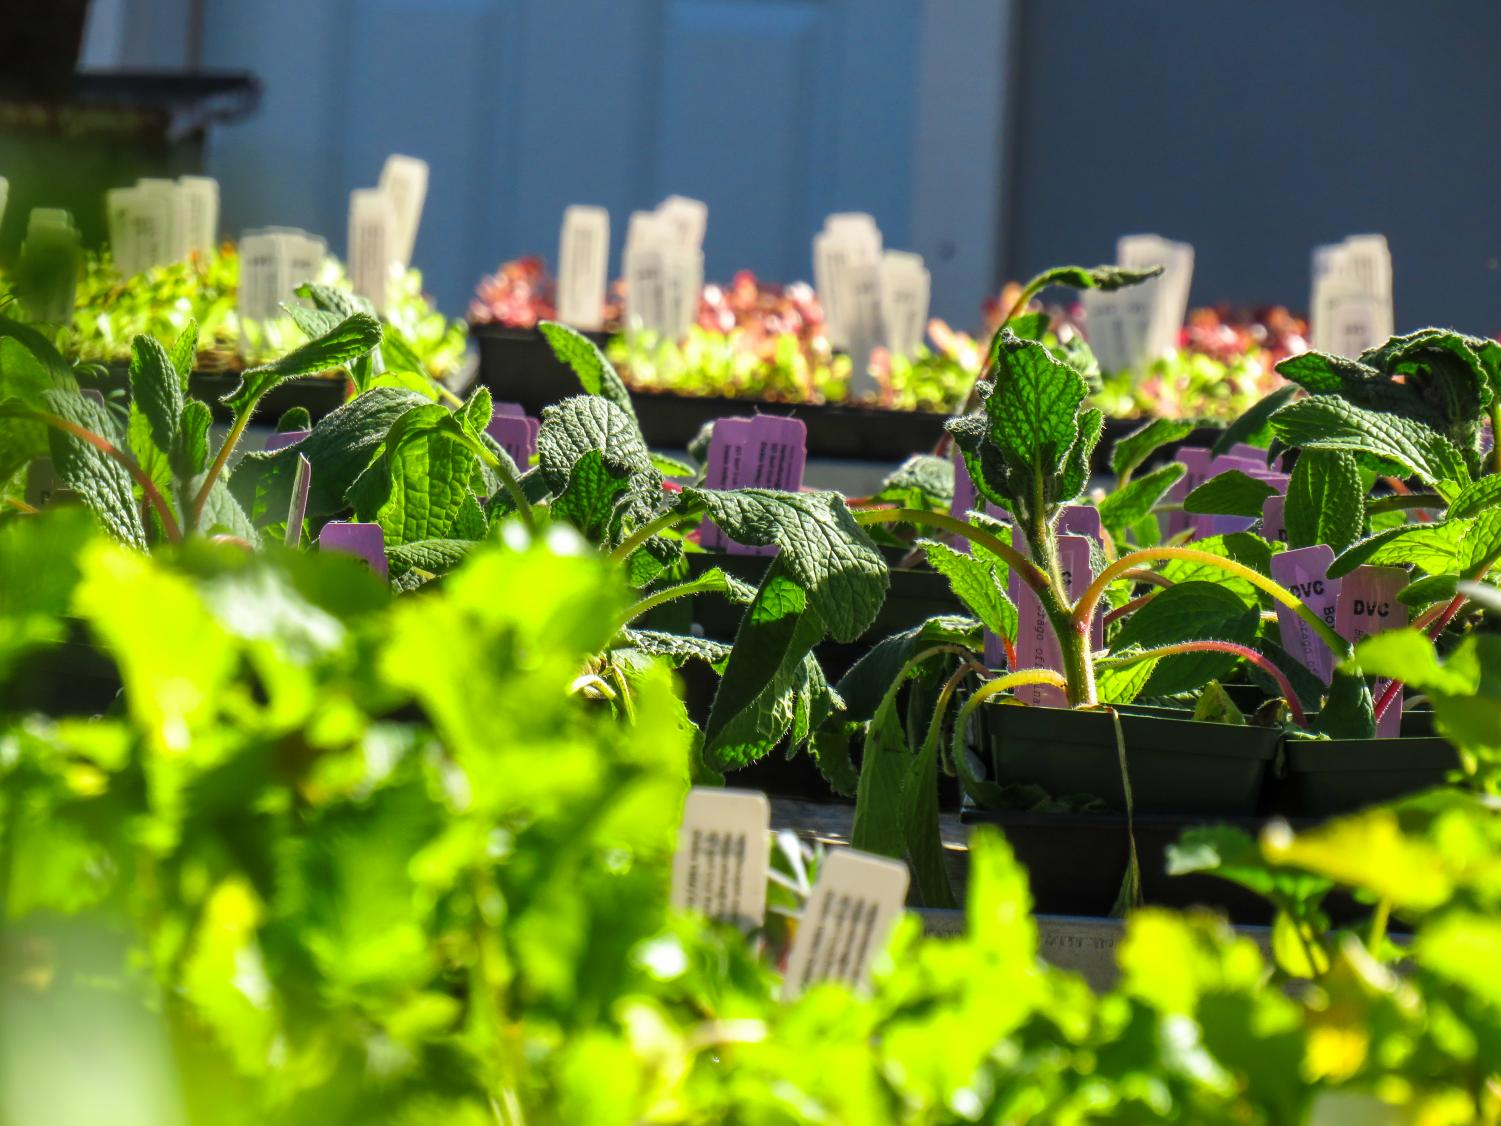 The horticulture department selling plants at a Plant Sale  which took place February 22-23 at Diablo Valley College. (Pavlina MarkovaThe Inquirer).